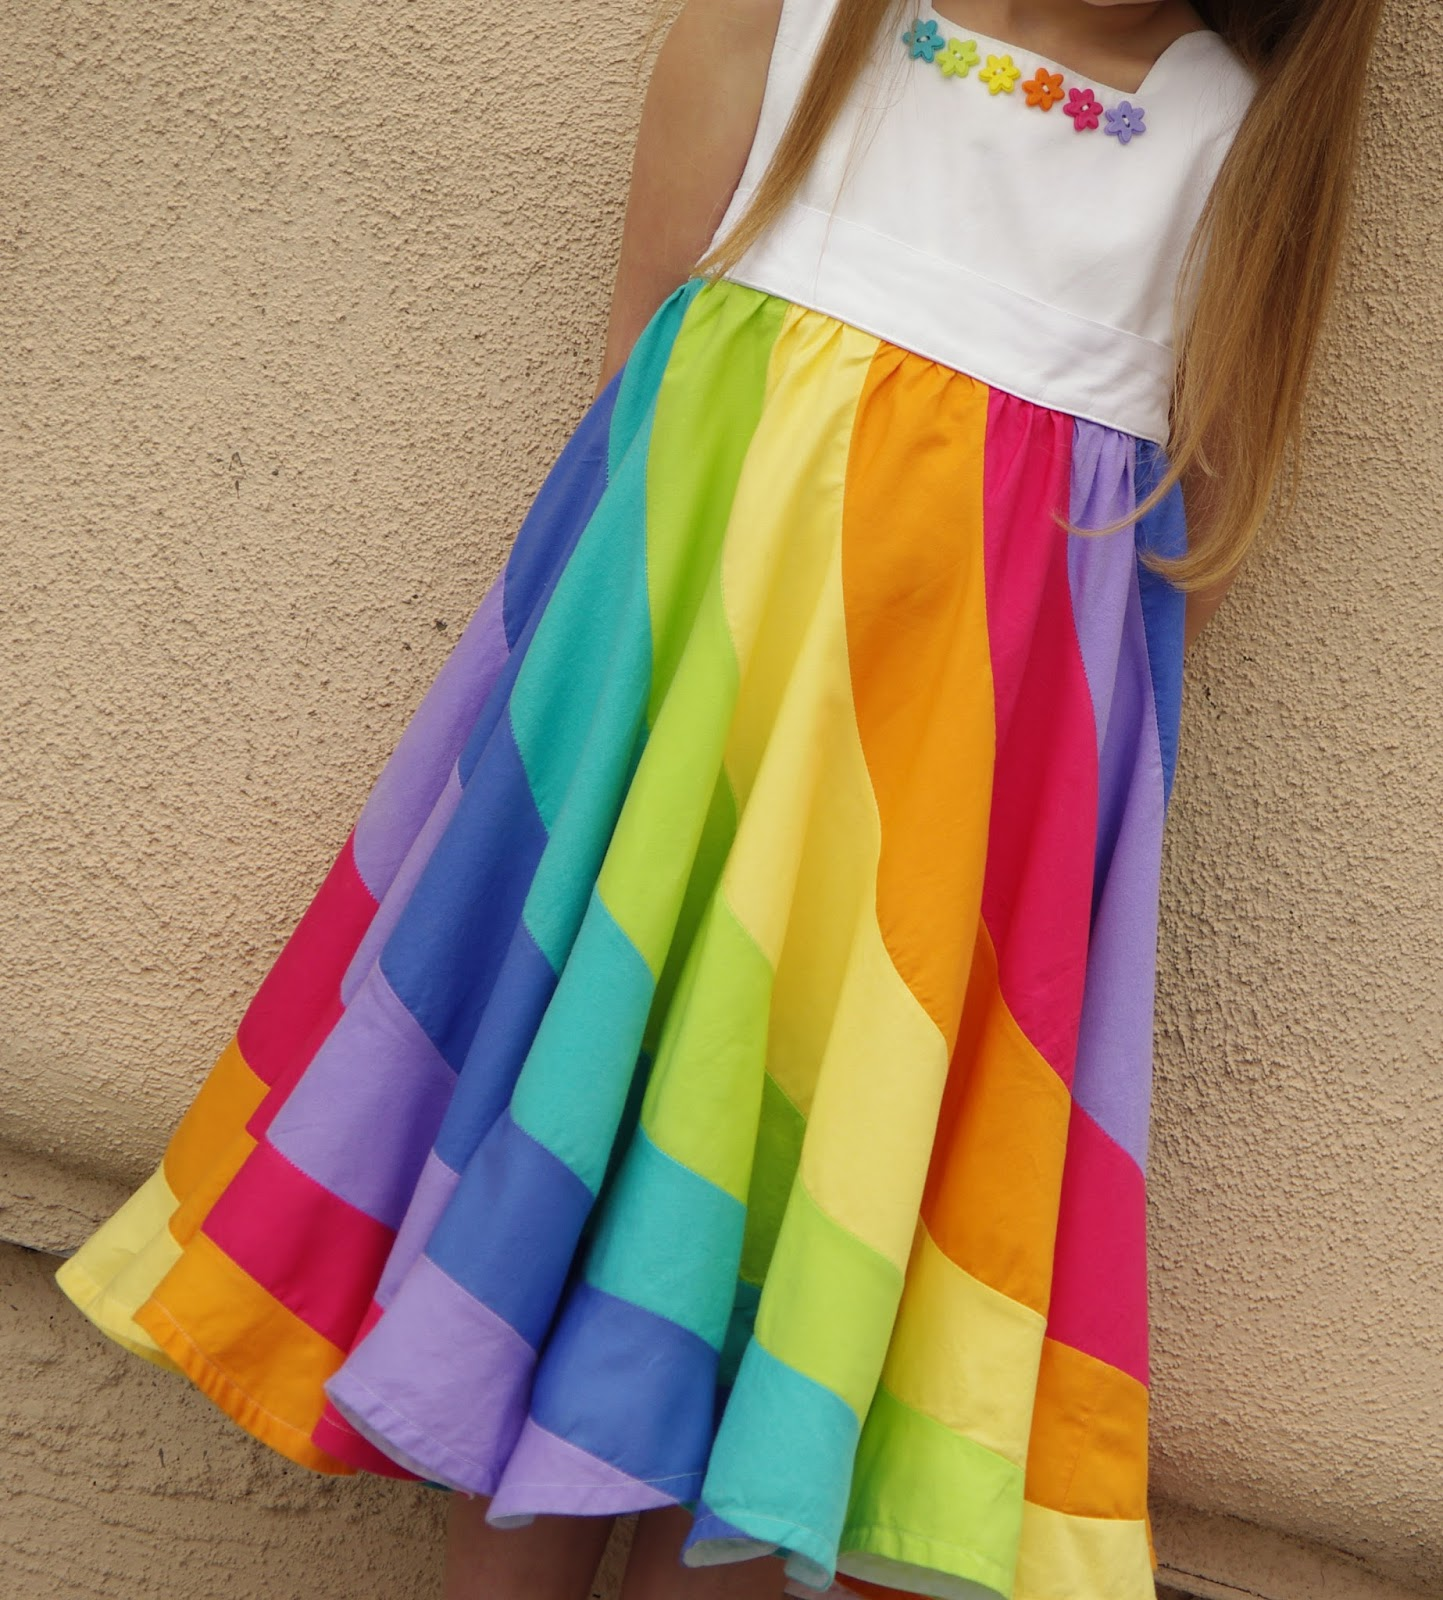 Rainy Birthday Outfit: Ahhh...Quilting: The Rainbow Dress